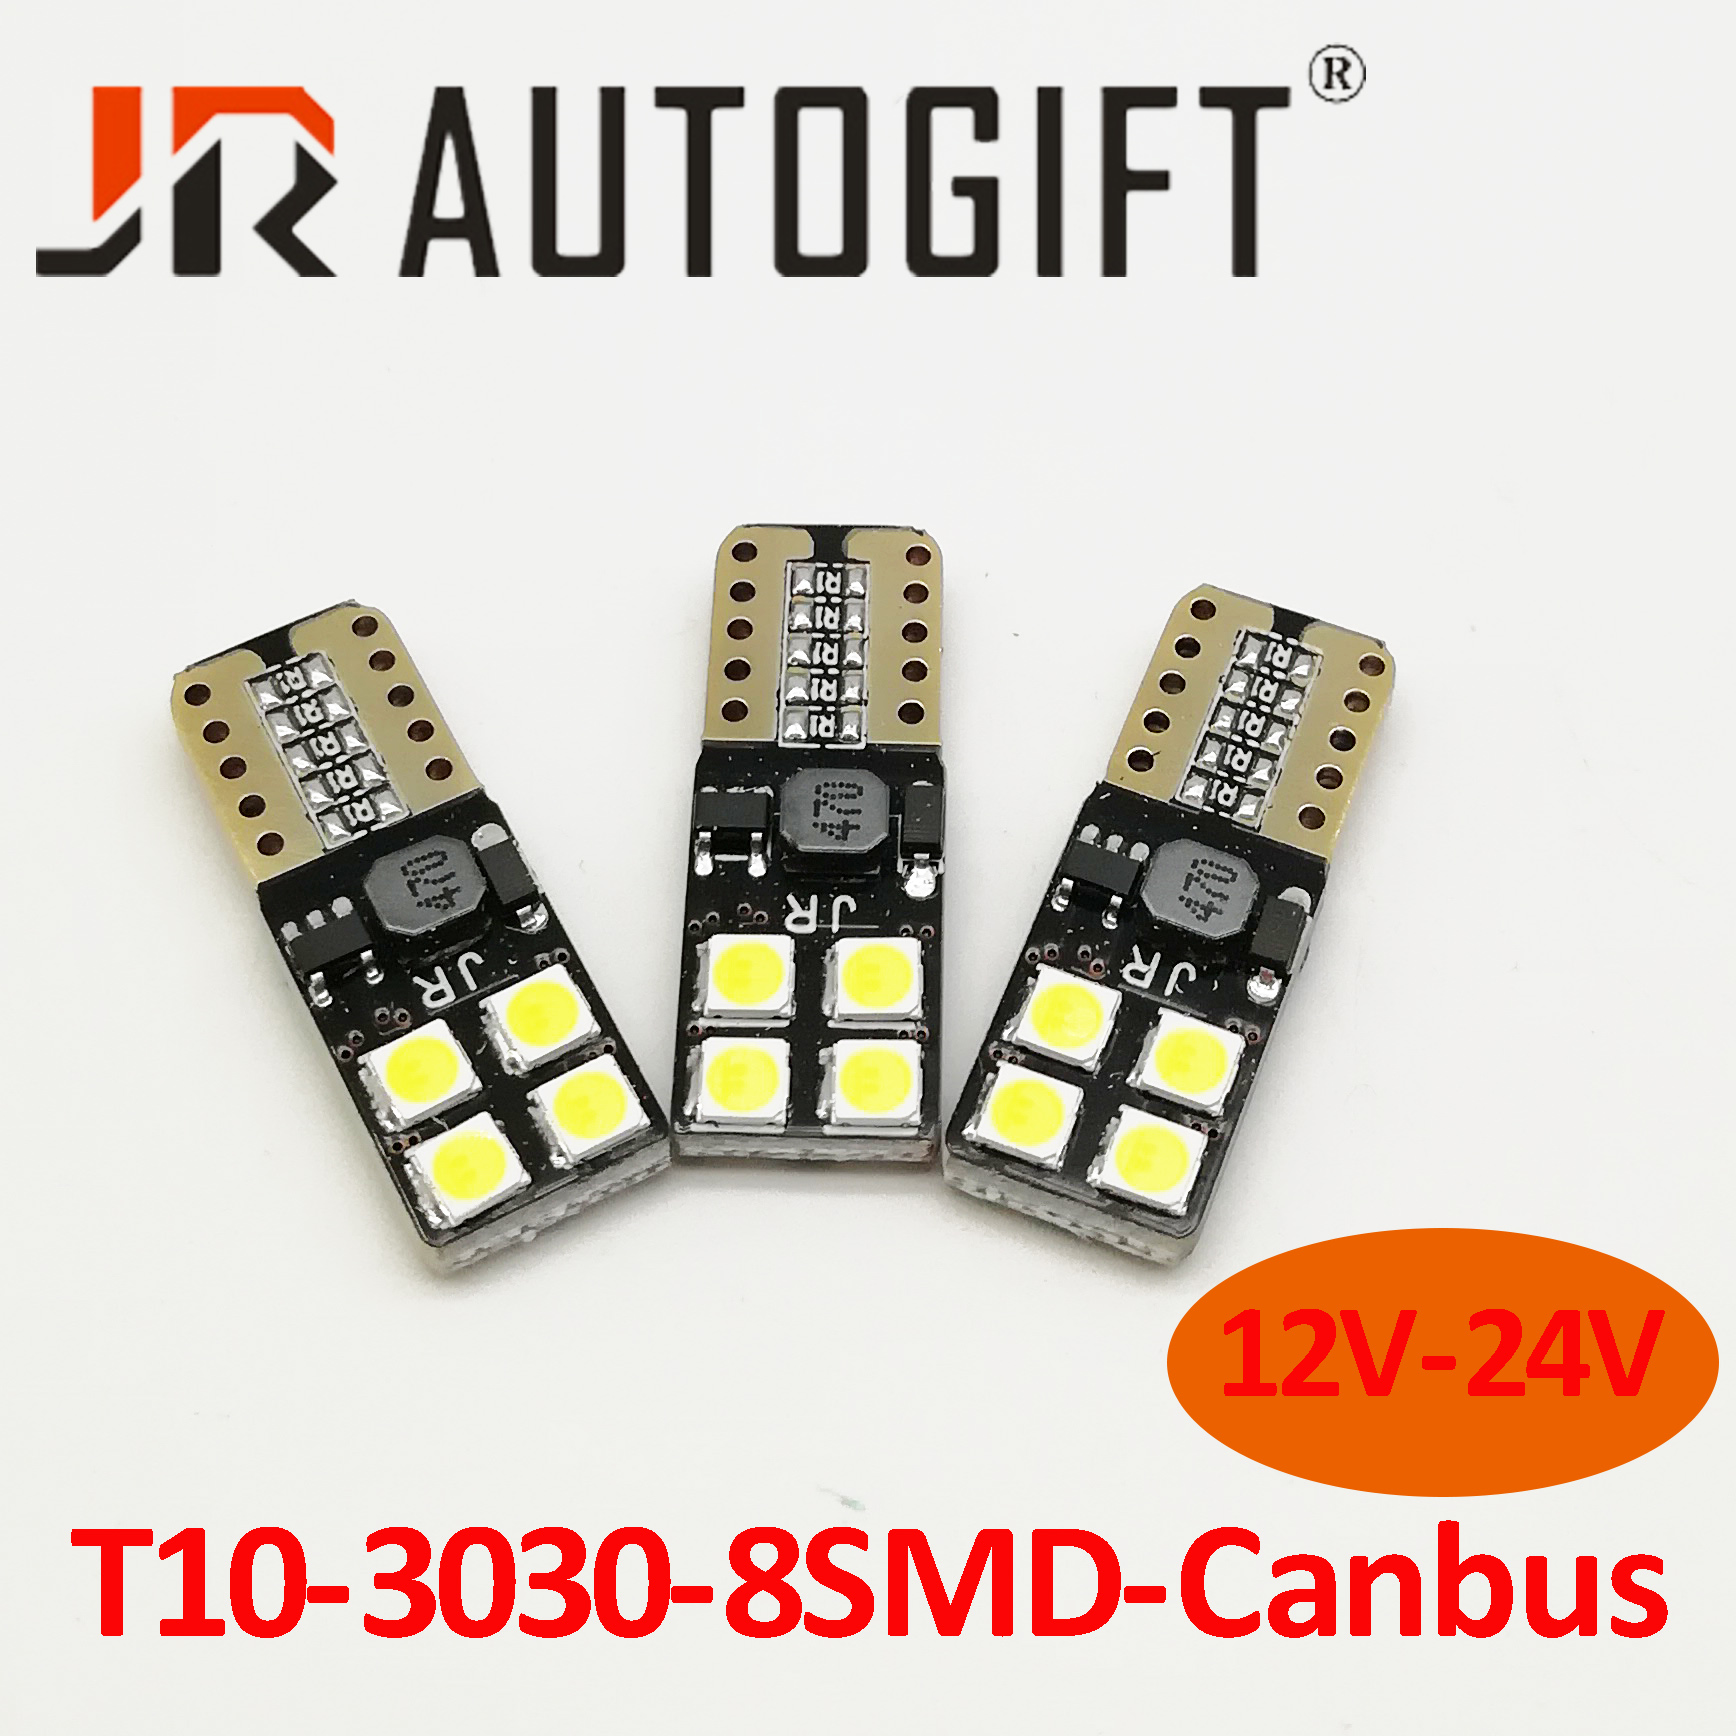 2x Canbus T10 194 168 W5W 5630 8 LED SMD White Car Side Wedge Light Lamp Buld FT